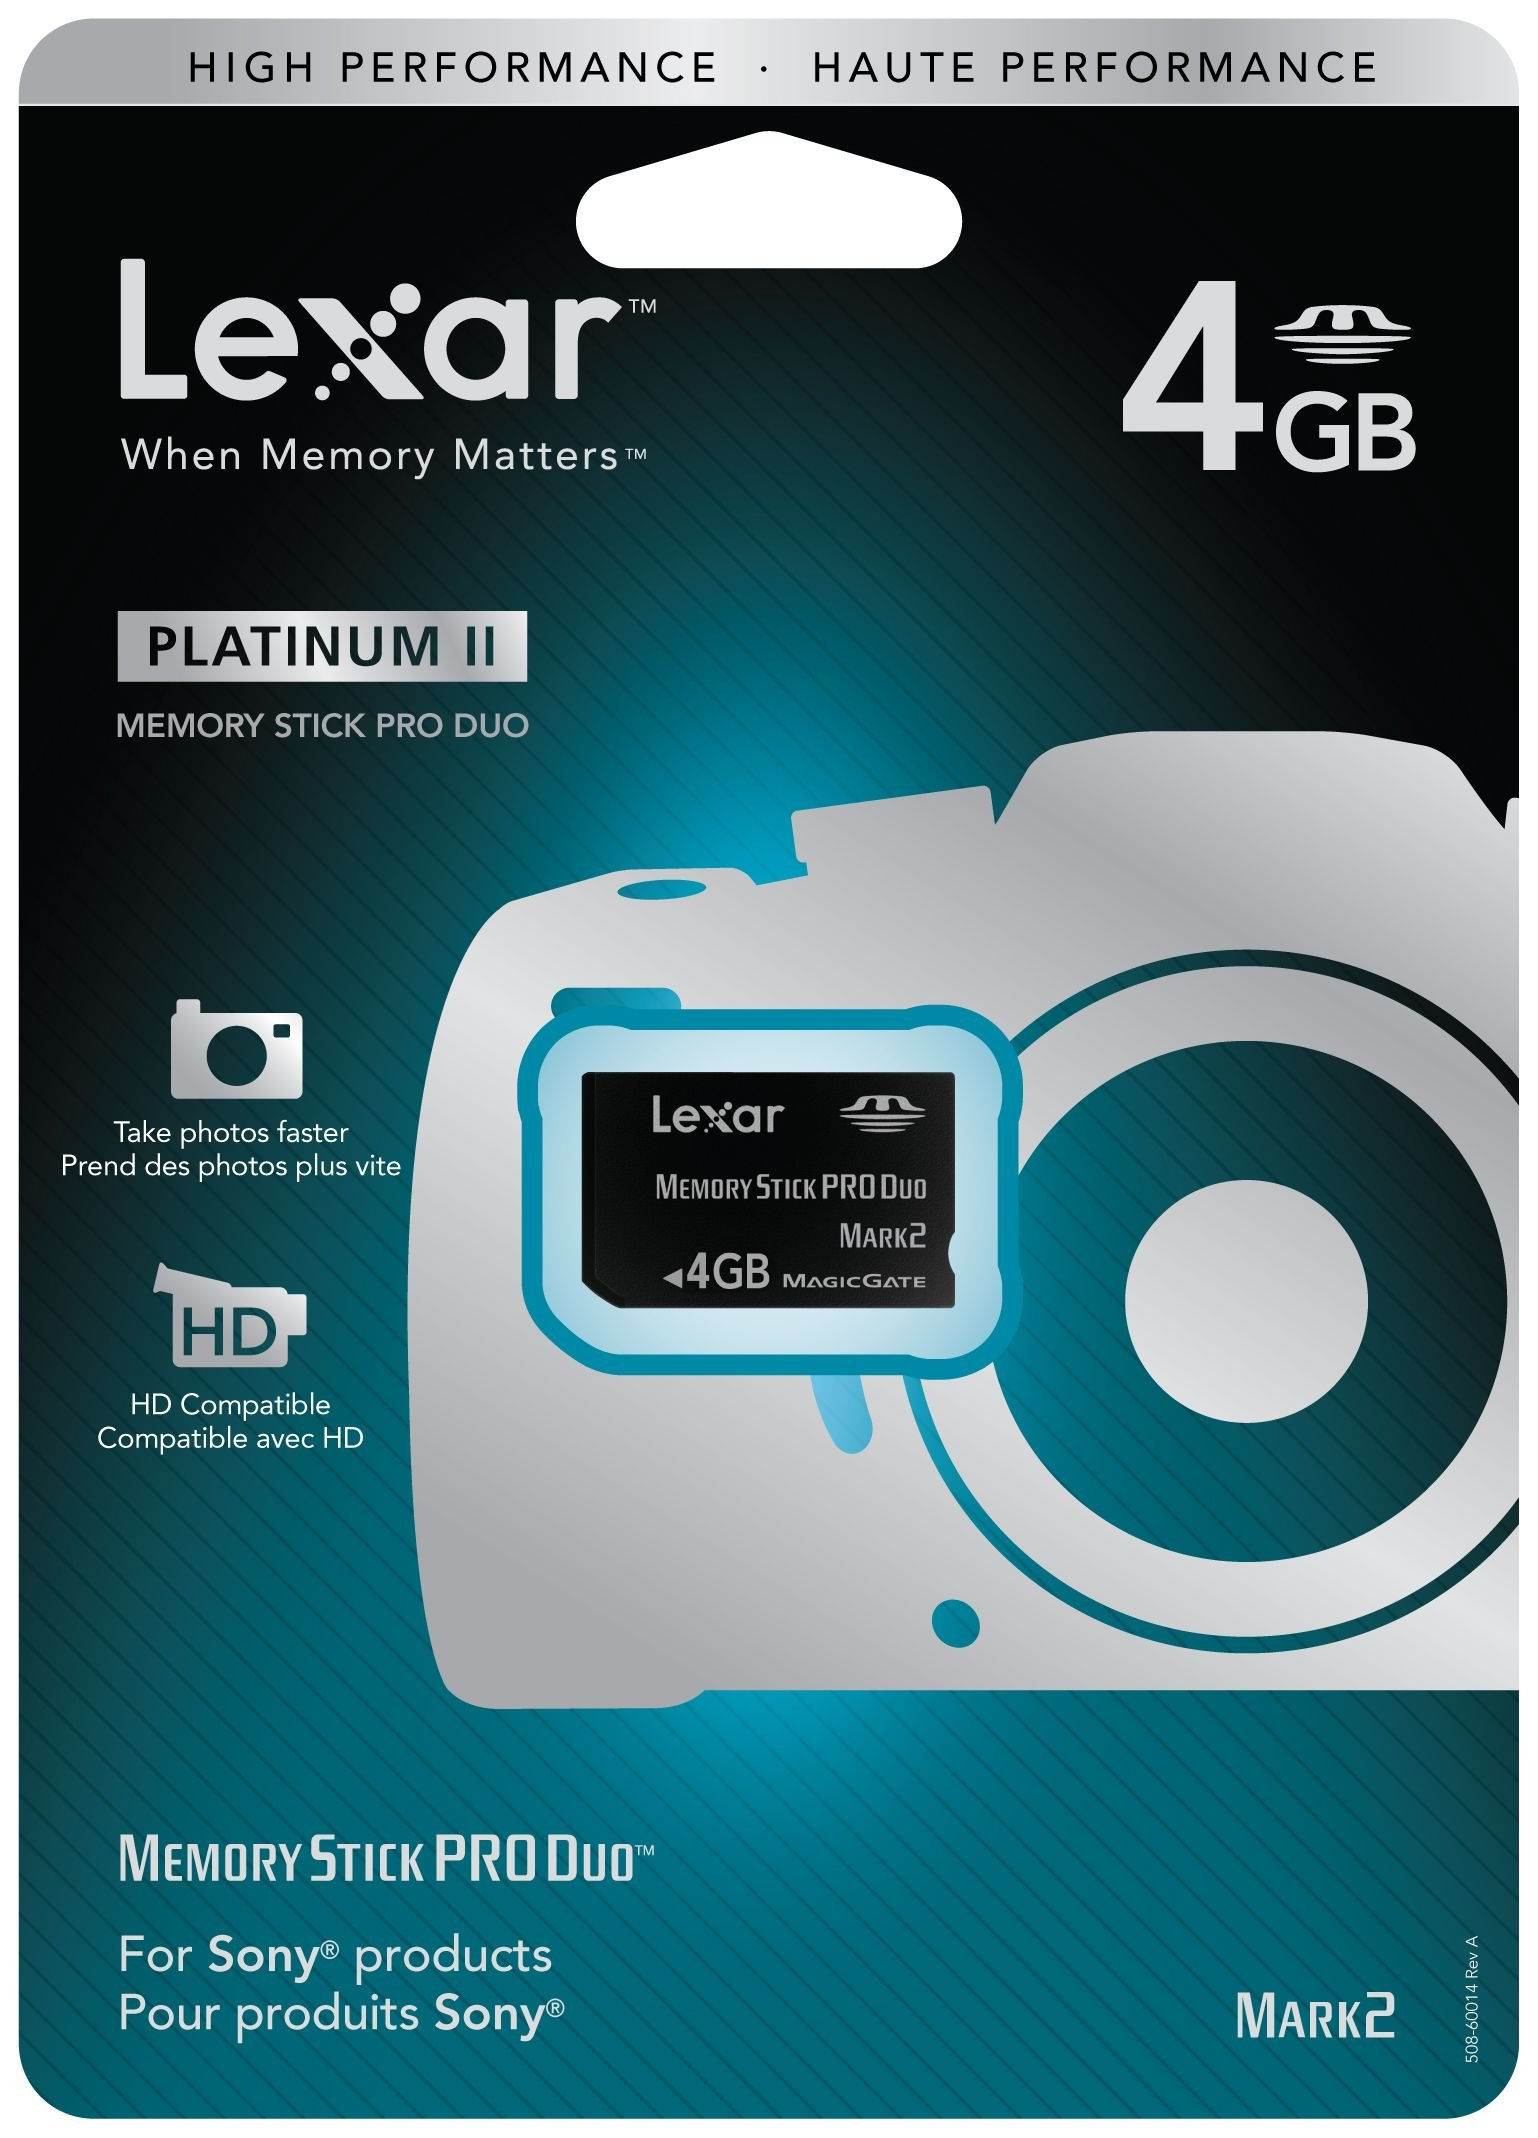 Lexar Platinum II 4GB Memory Stick Pro Duo Flash Memory Card LMSPD4GBBSBNA